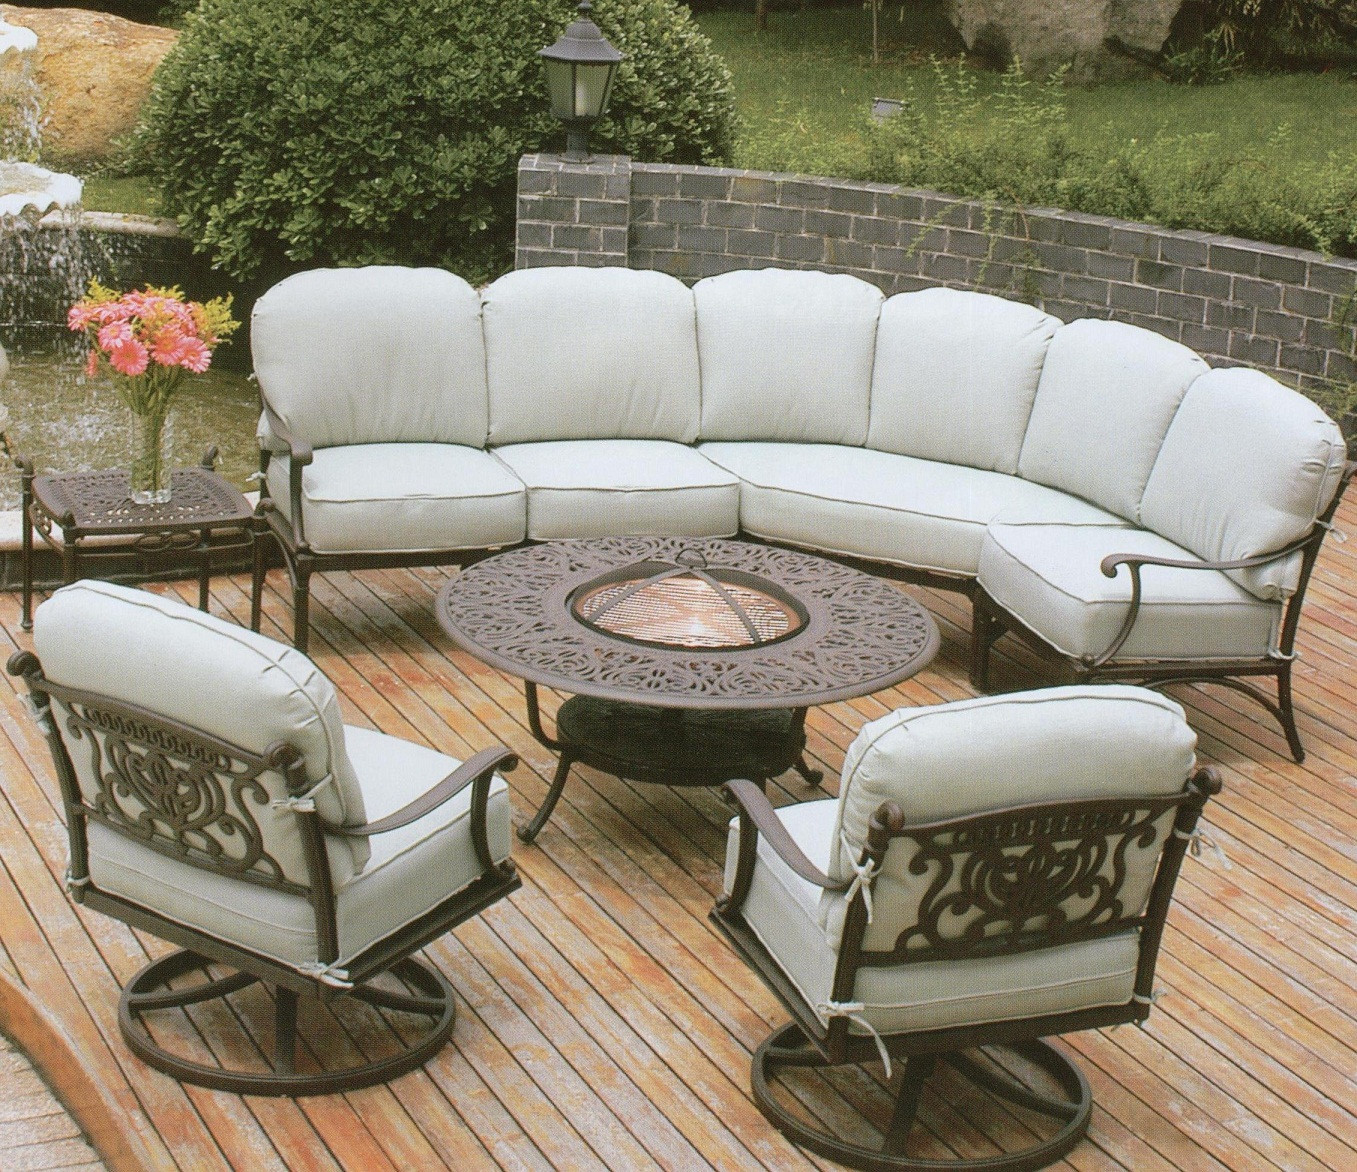 Best ideas about Discontinued Patio Furniture . Save or Pin Patio Furniture Sears Clearance Sale Cottage Outdoor Now.